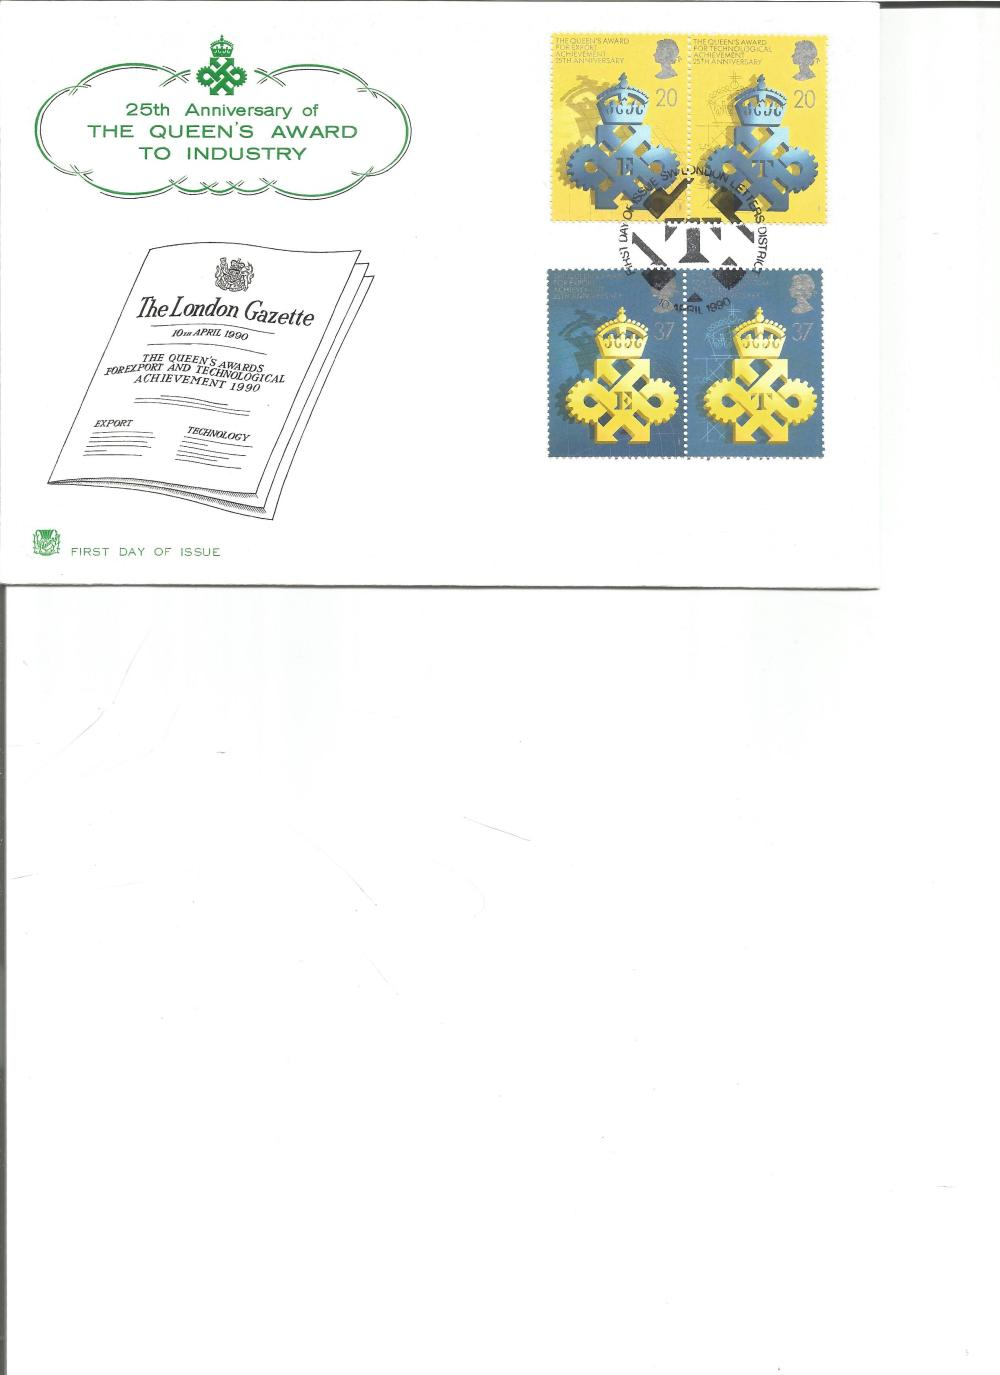 FDC 25TH Anniversary of the Queens Award to Industry c/w set of four stamps PM First Day of Issue